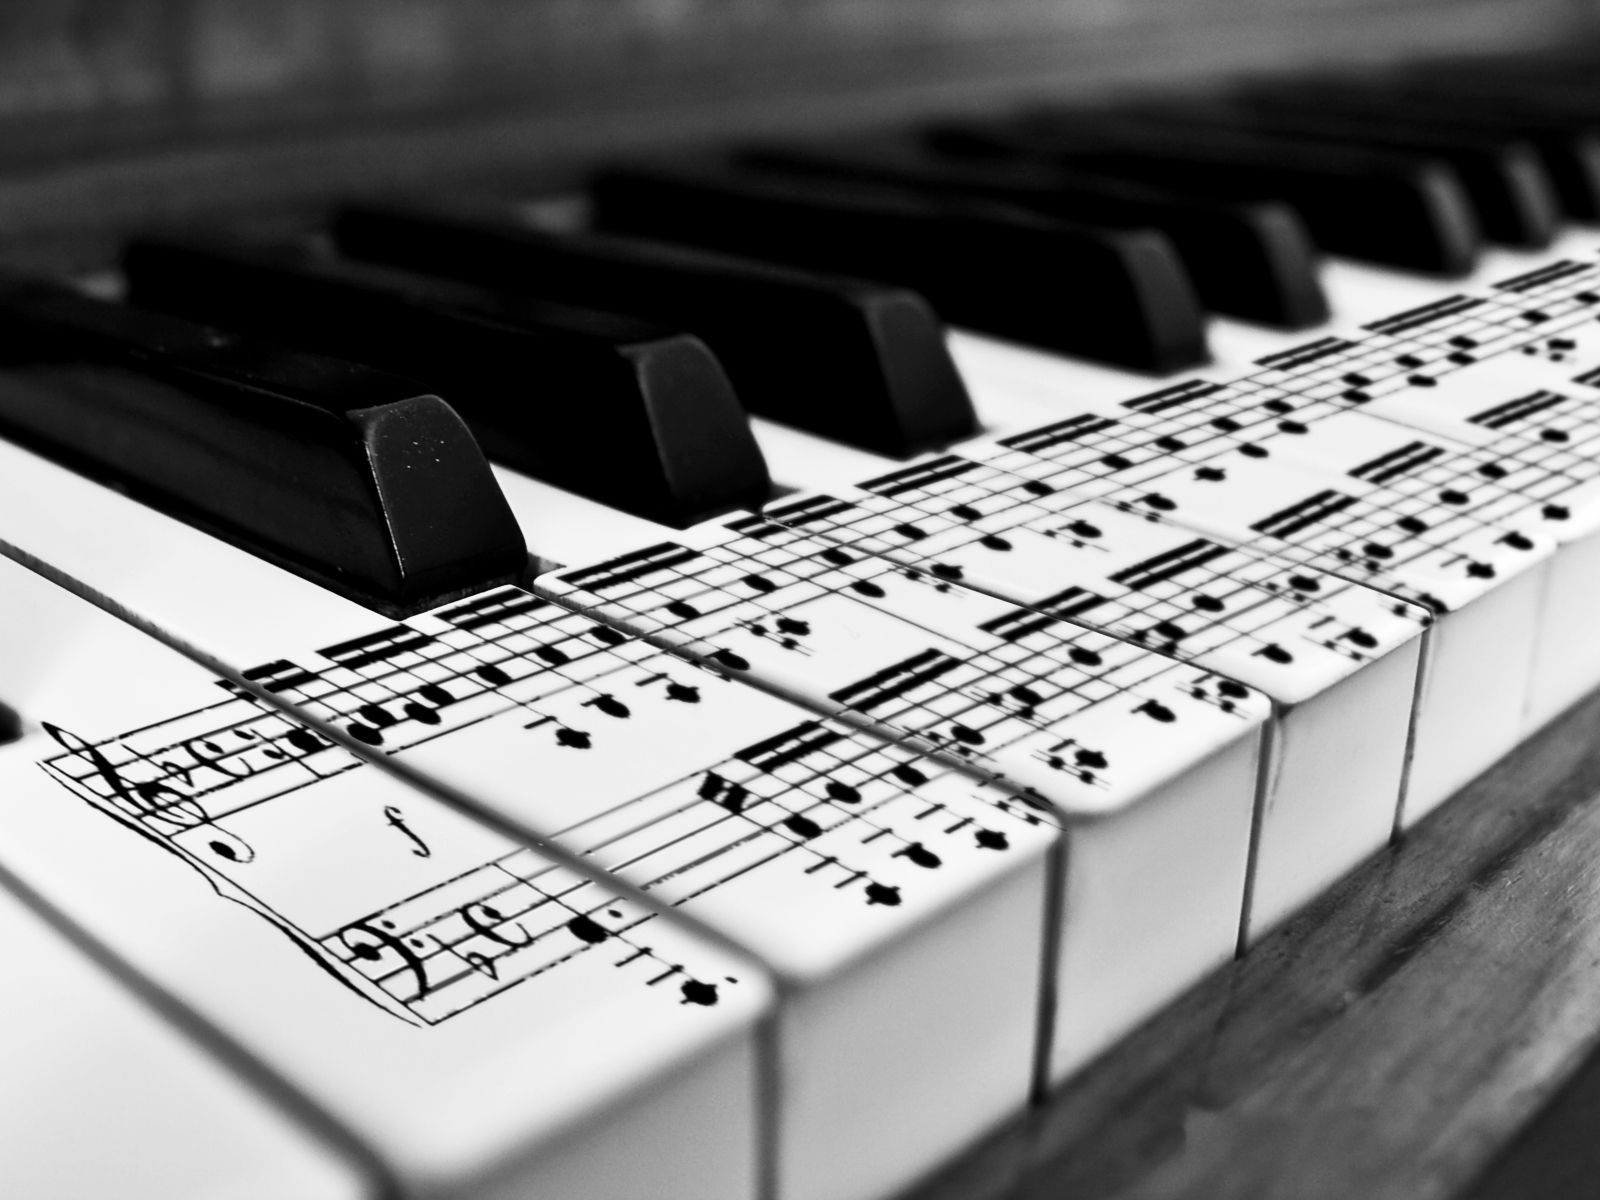 sheet music piano wallpaper hd desktop background #2833434 wallpaper